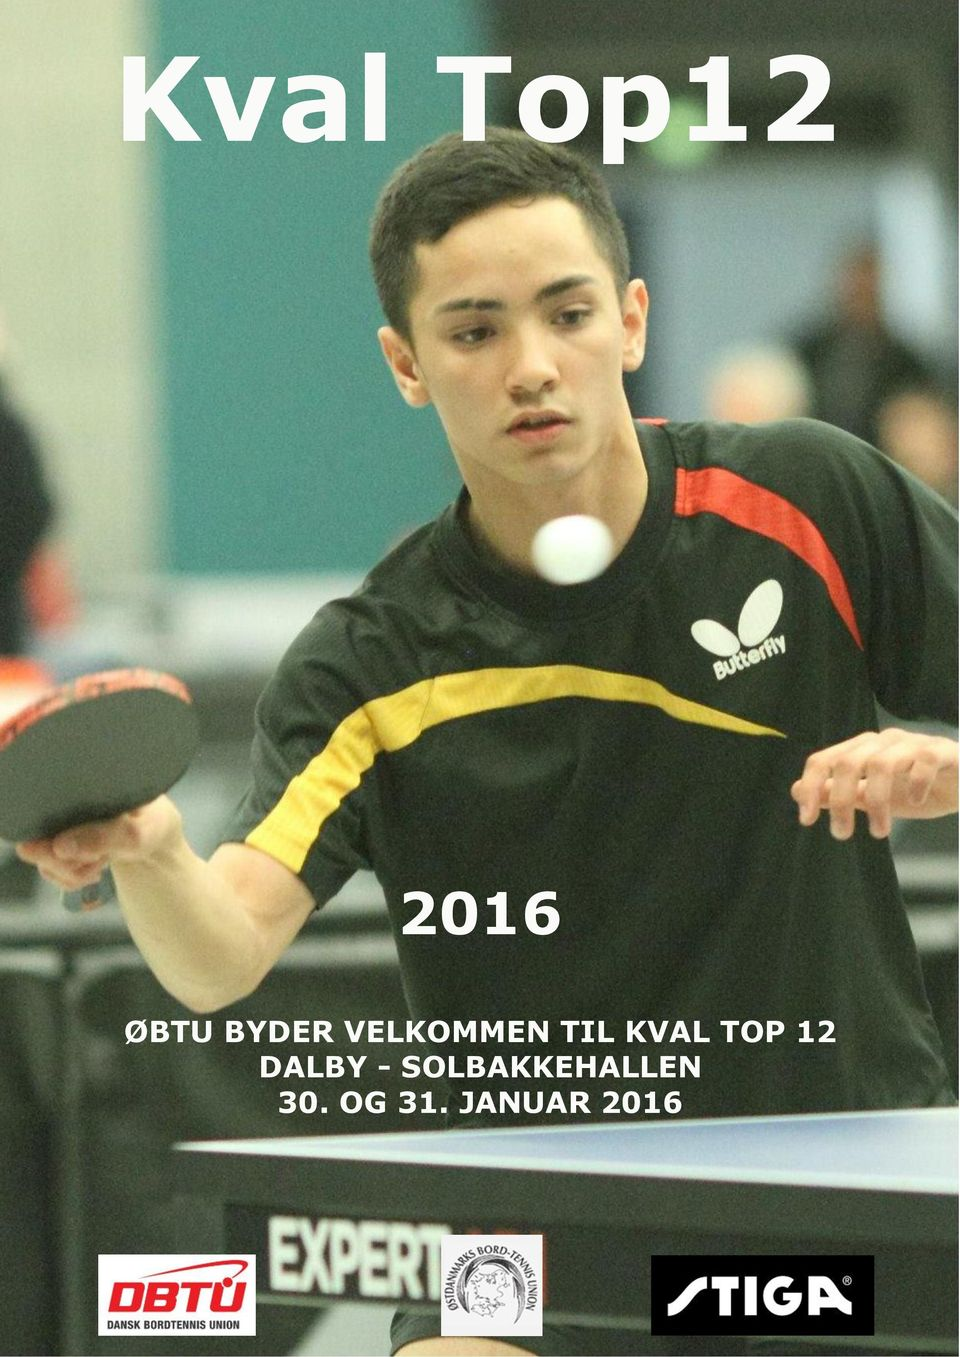 TOP 12 DALBY -